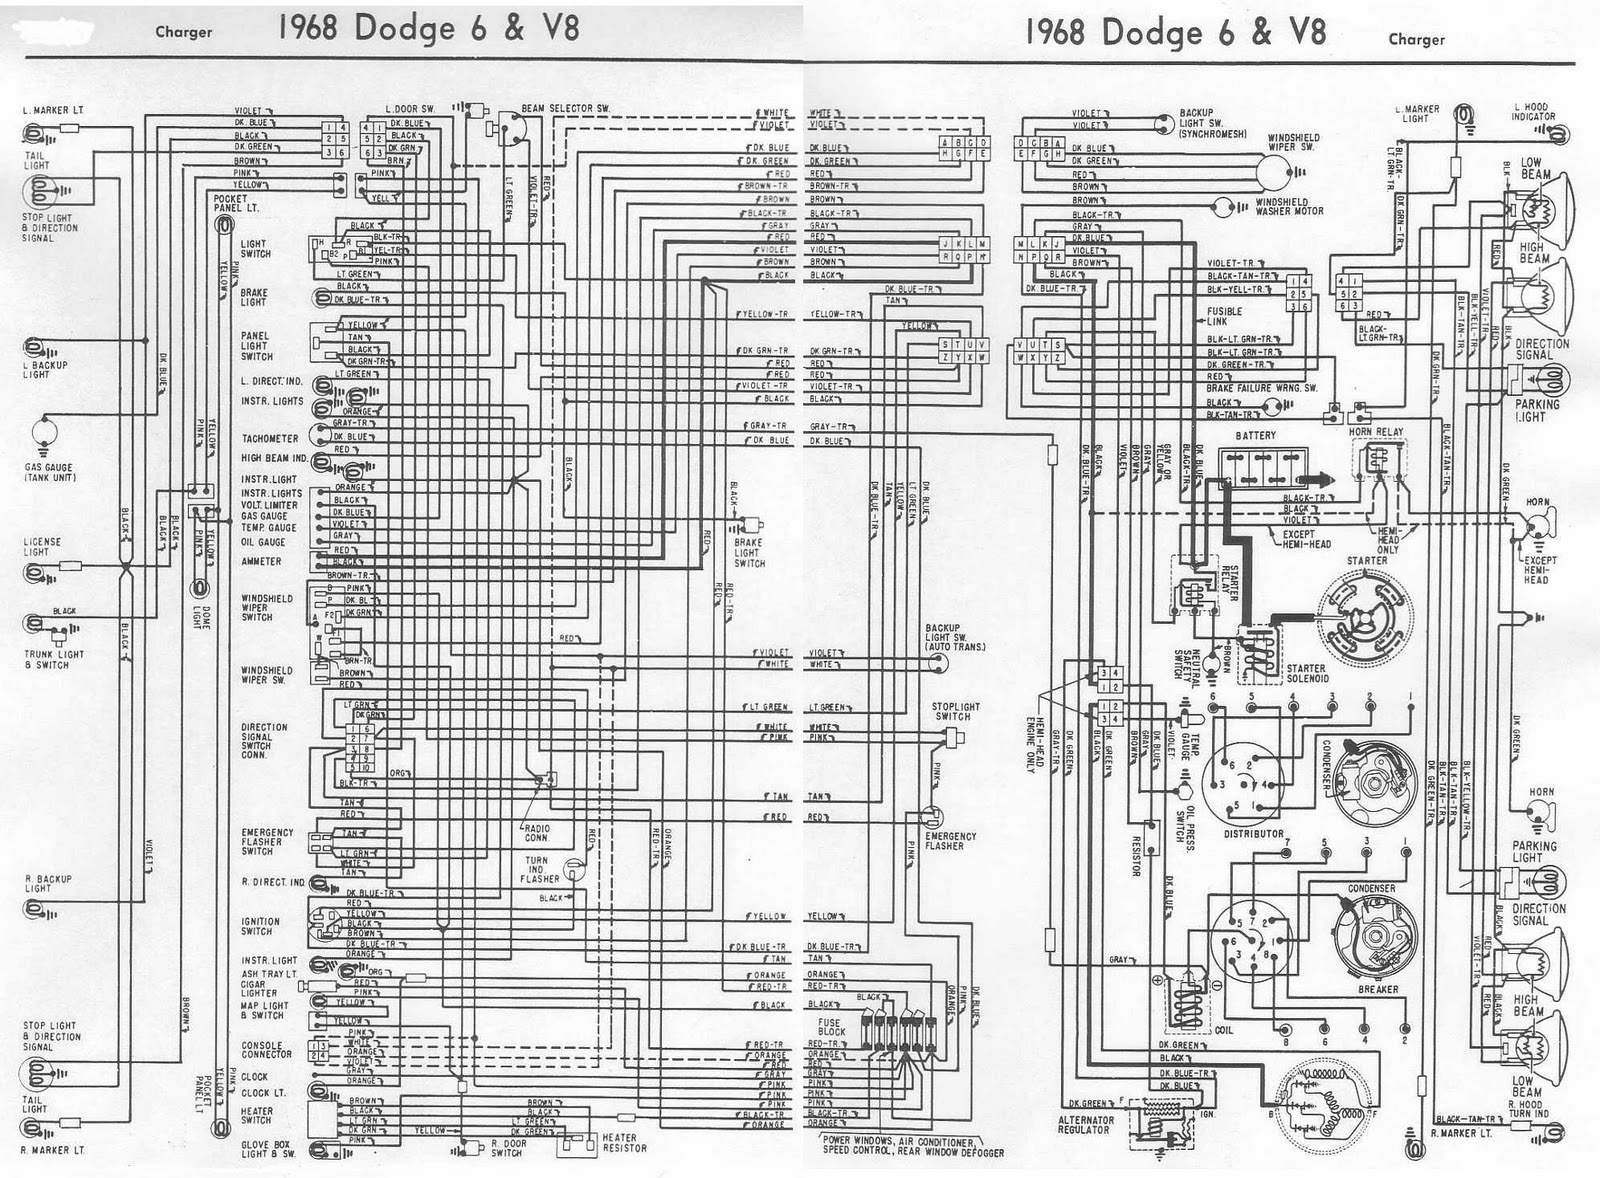 Dodge+Charger+1968+6+and+V8+Complete+Electrical+Wiring+Diagram dodge charger wiring diagram dodge wiring diagrams instruction 1970 dodge coronet wiring diagram at metegol.co